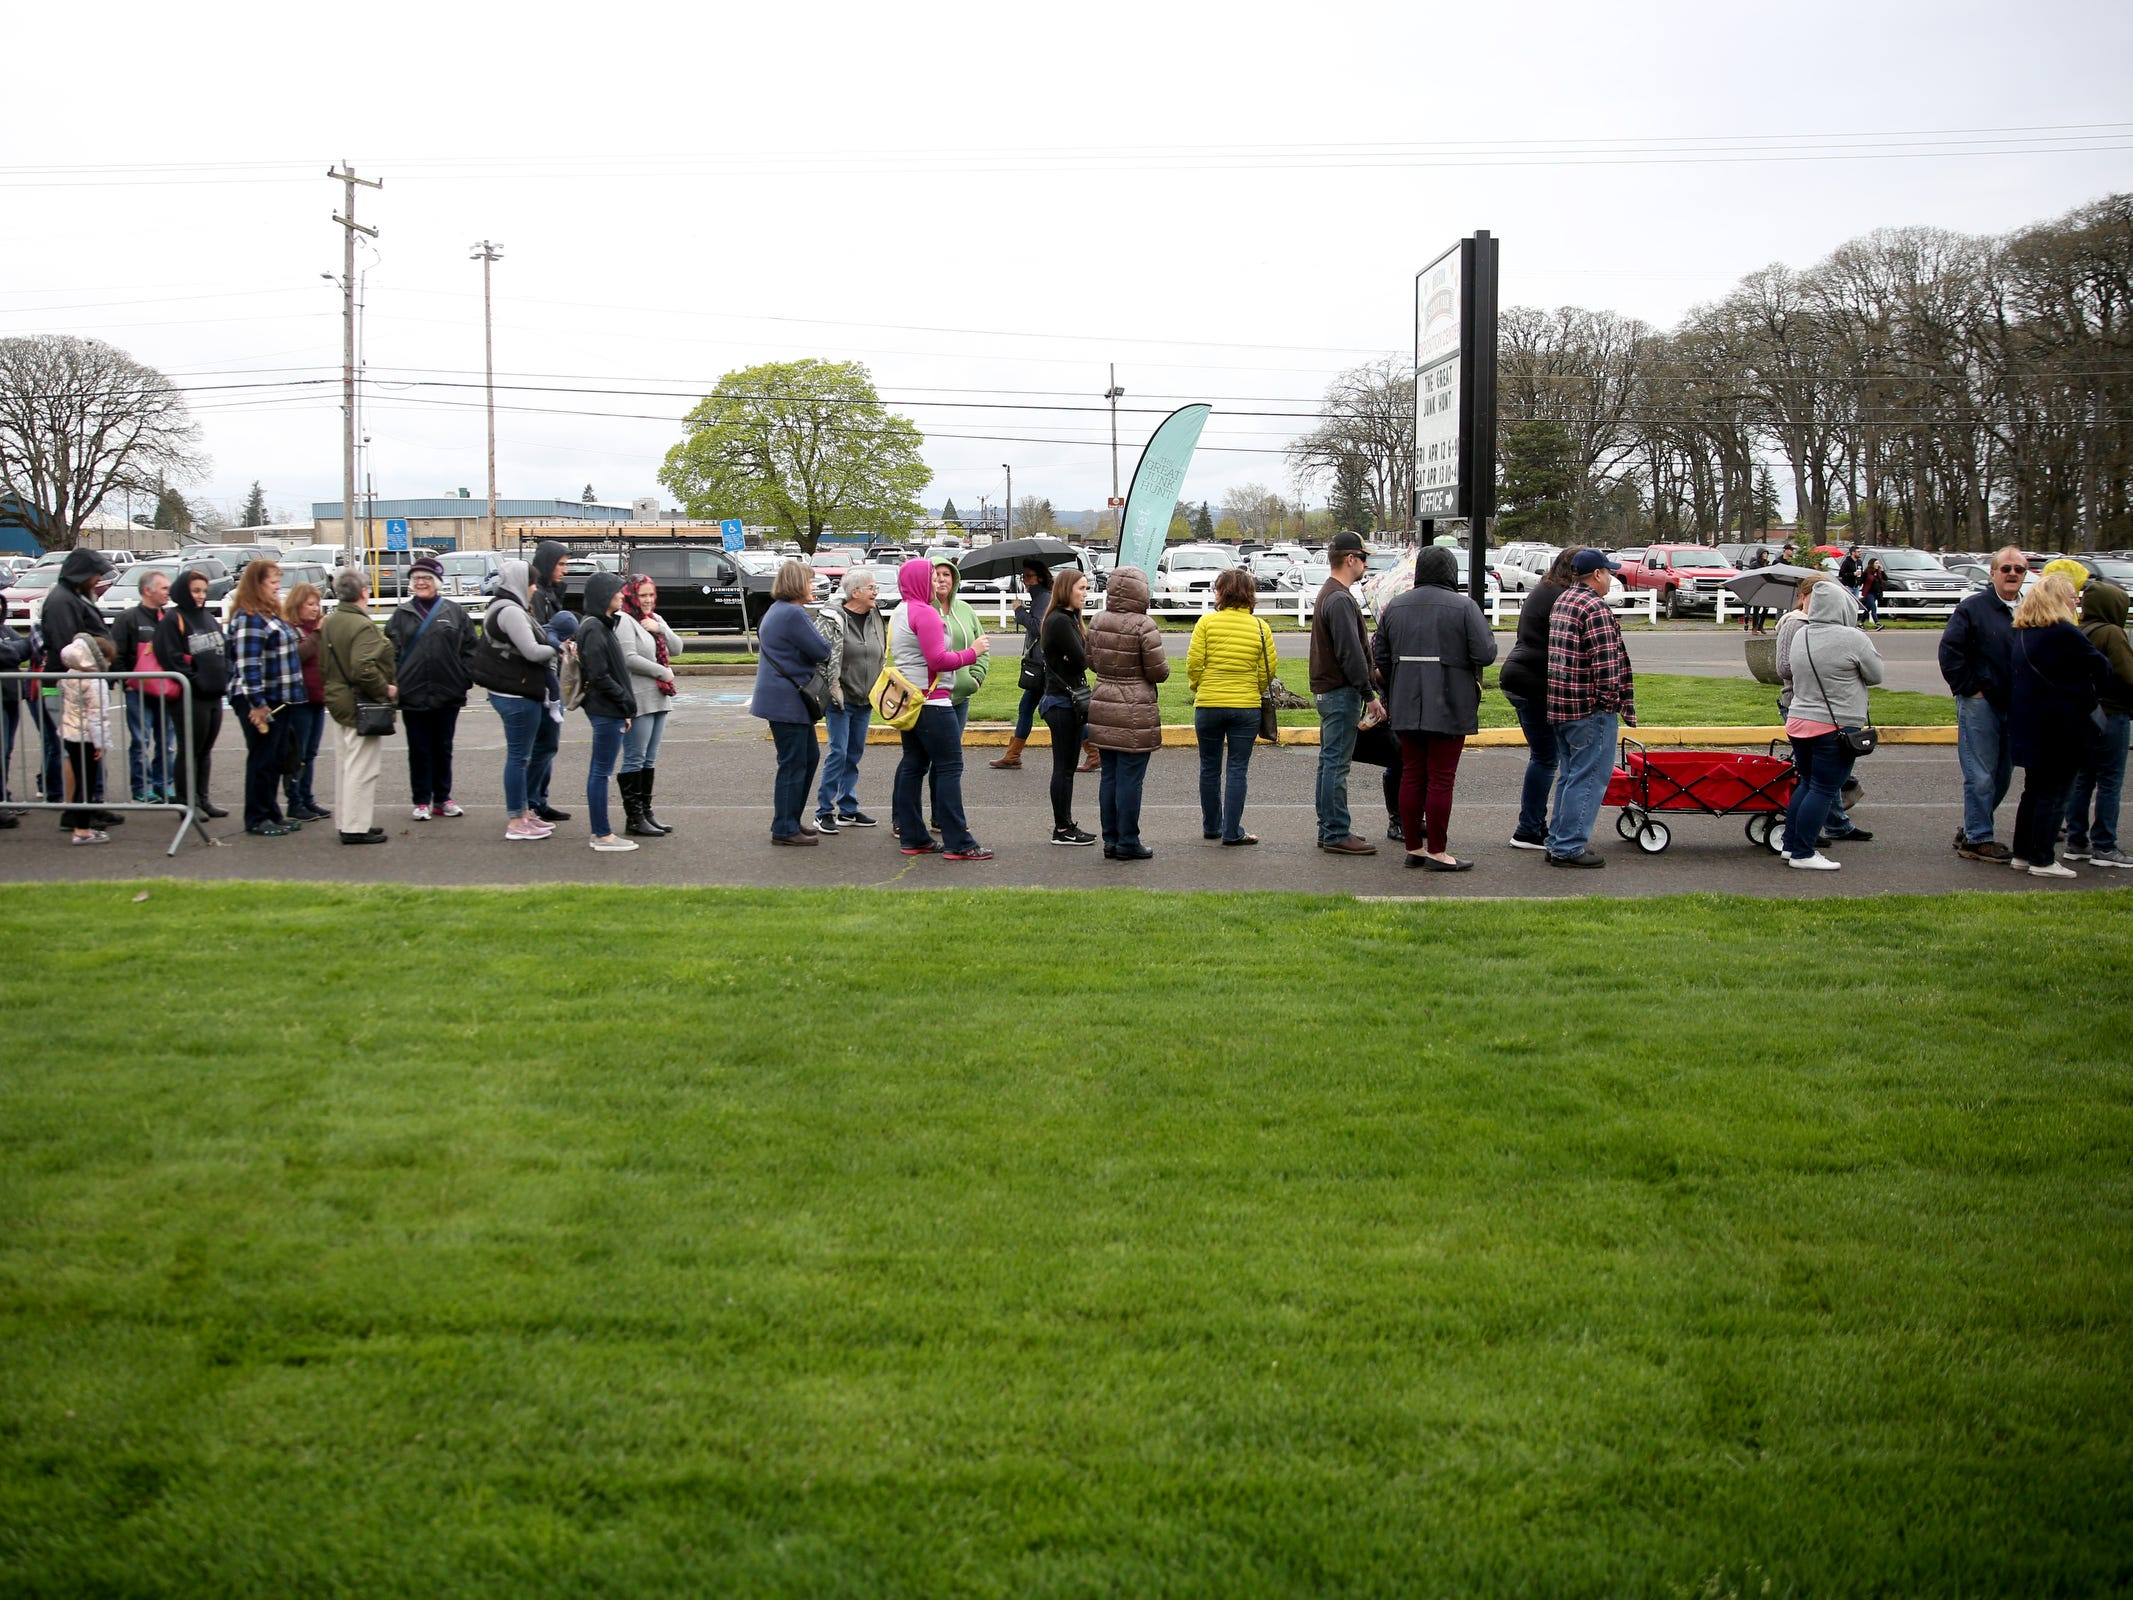 Hundreds of people wait in line for the doors to open for The Great Junk Hunt, a traveling vintage market, at the Oregon State Fairgrounds in Salem on April 13, 2019.